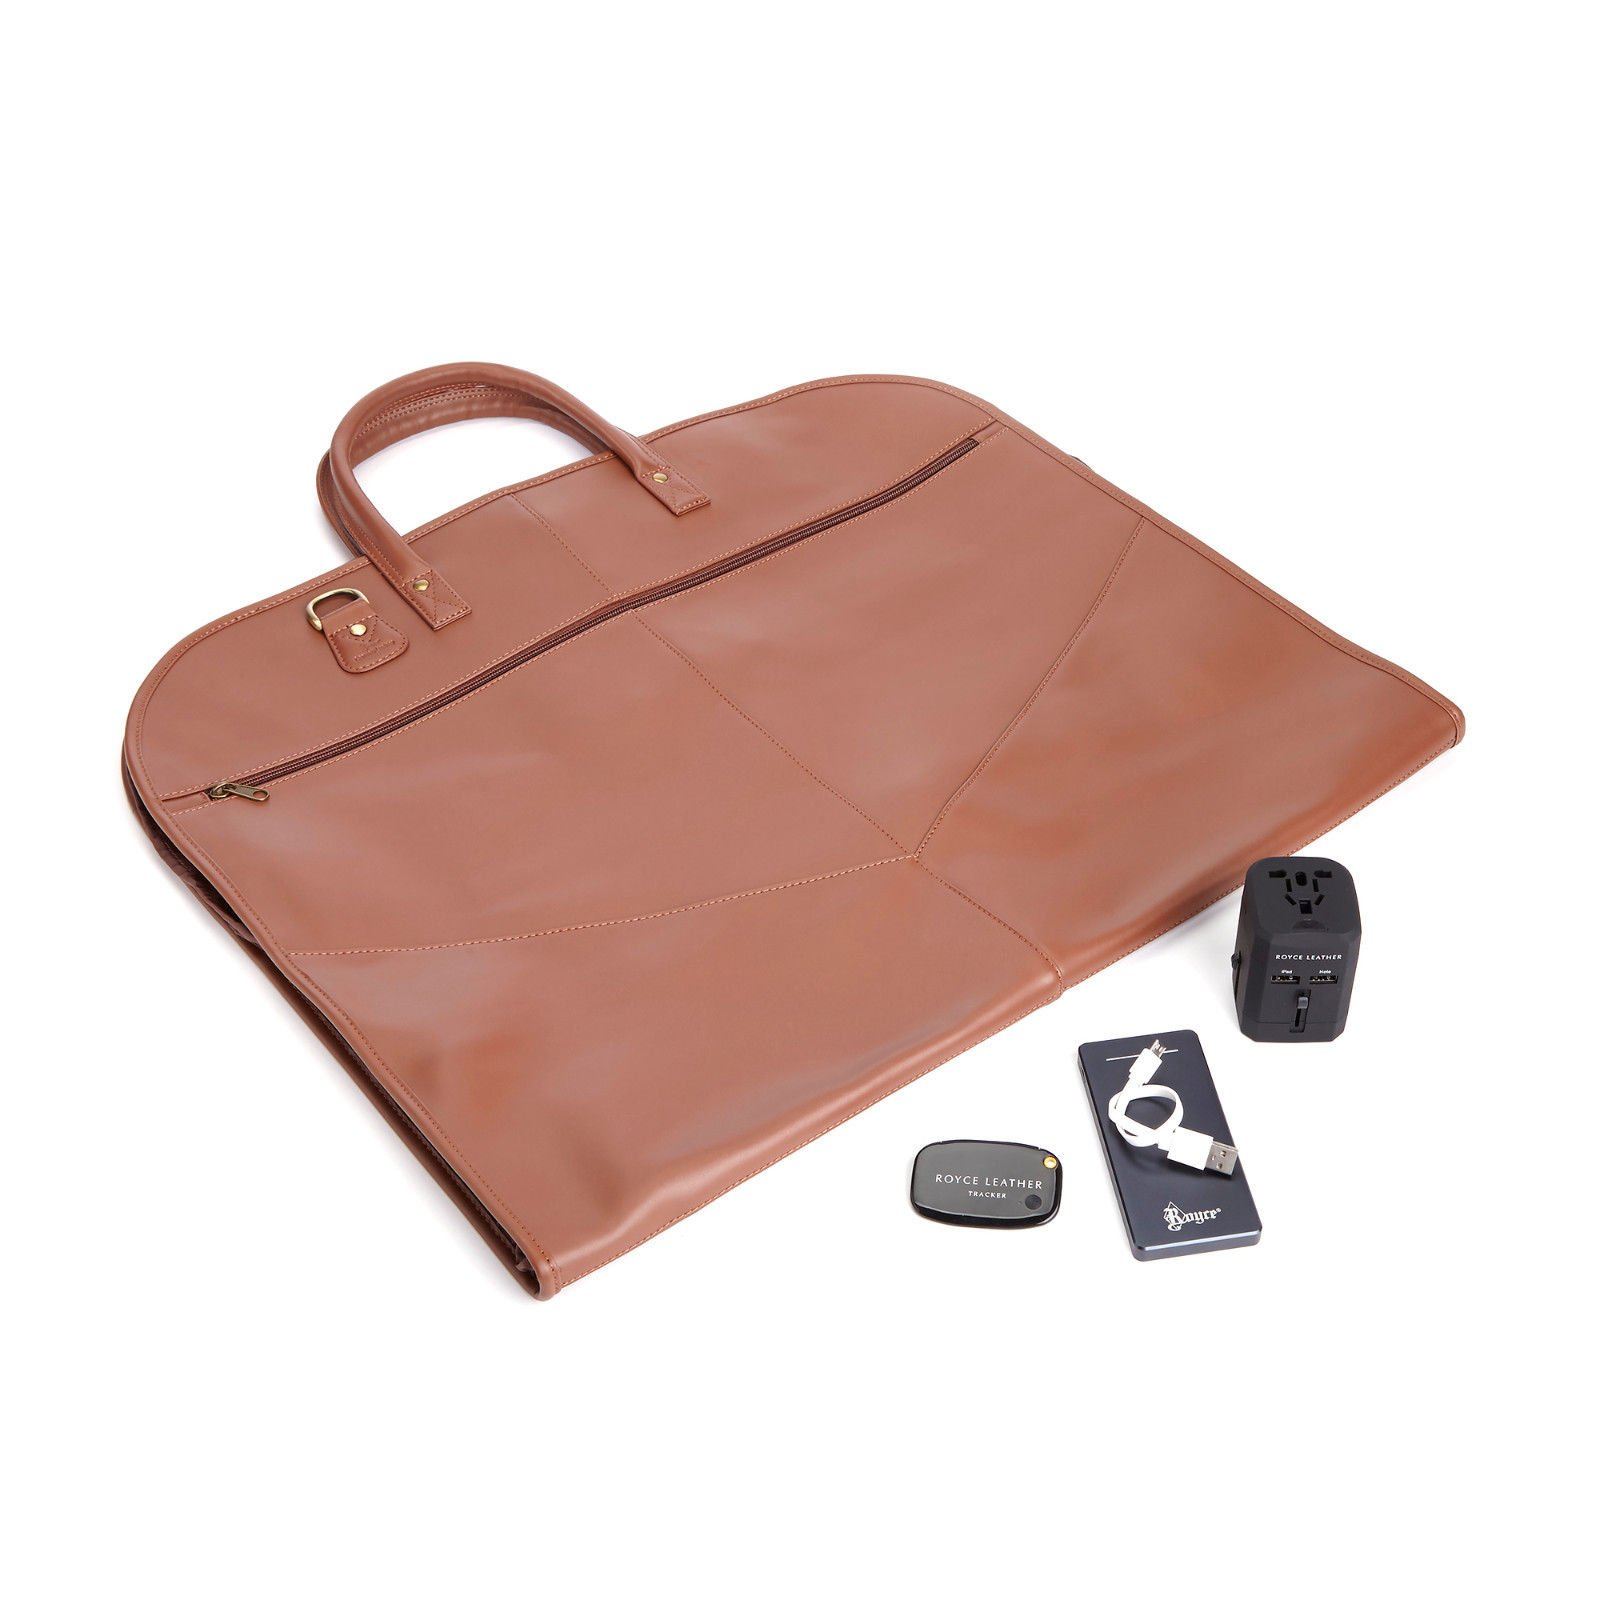 ROYCE Luxury Travel Set: Garment Bag with Bluetooth-based Tracking Device for Locating Luggage, Portable Power Bank and International Adapter - Tan by Royce Leather (Image #1)